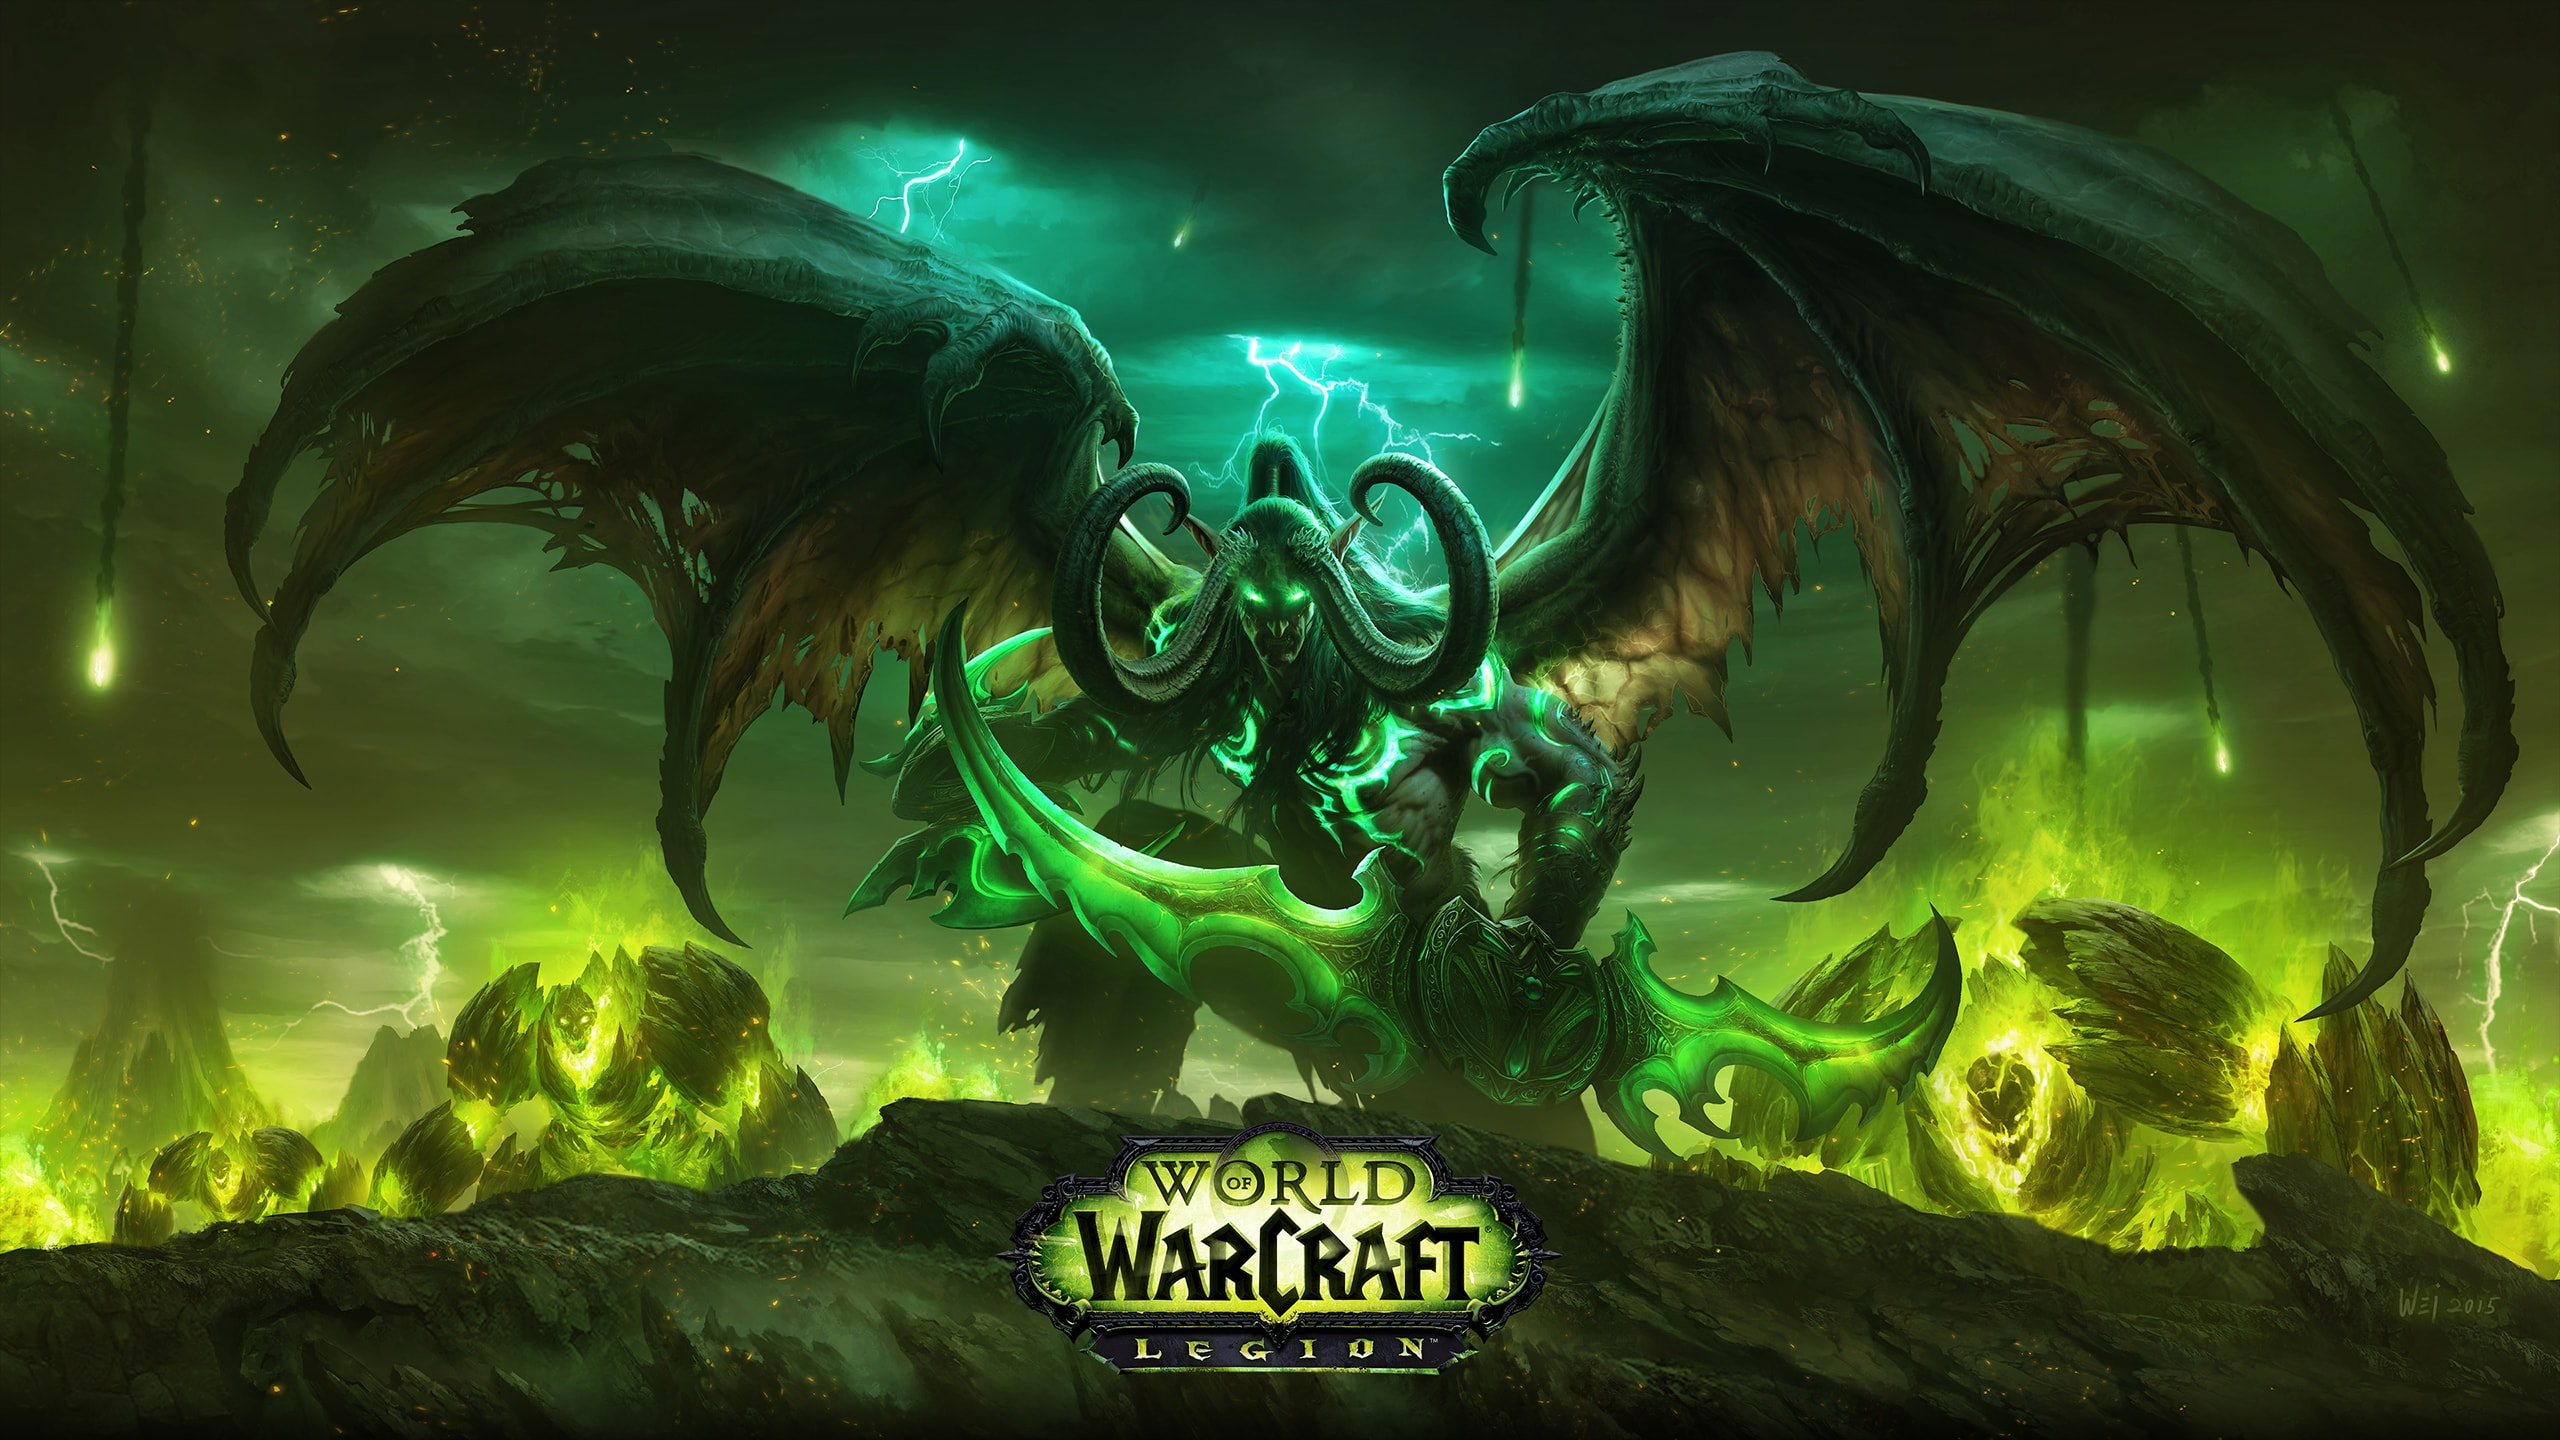 World of Warcraft: Legion widescreen wallpapers